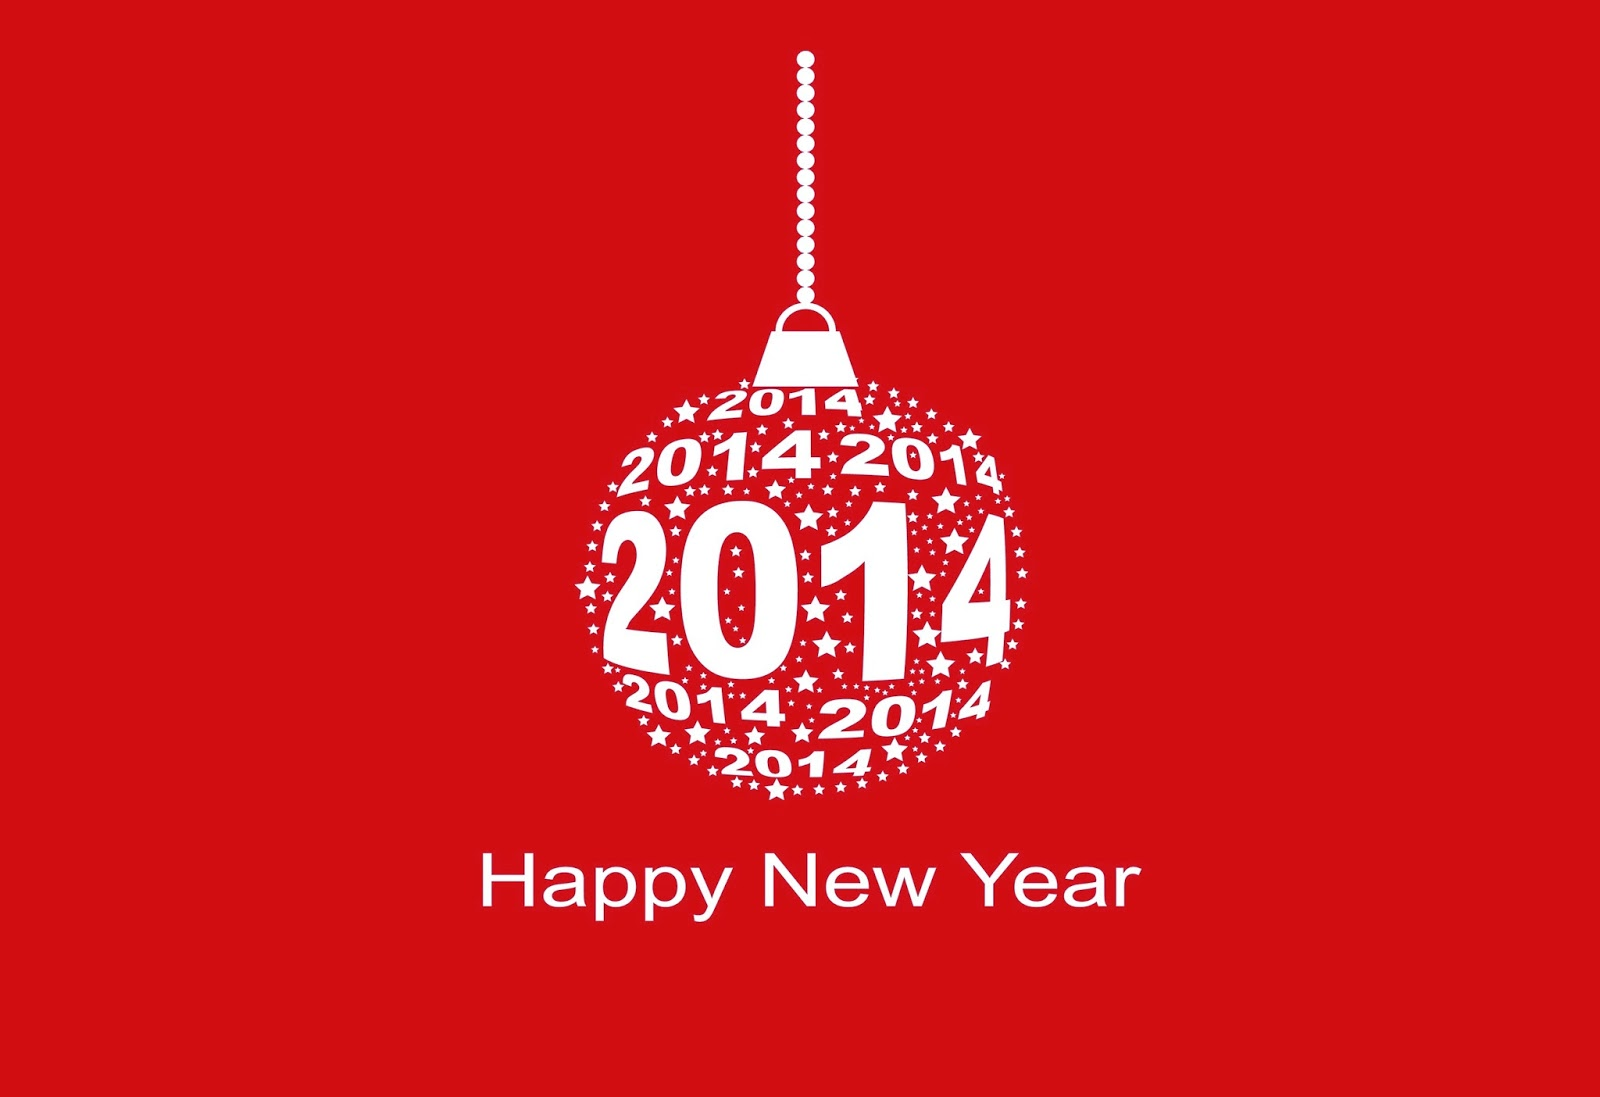 New Year 2014 Greetings Cards Download Powerpoint New Year Greeting